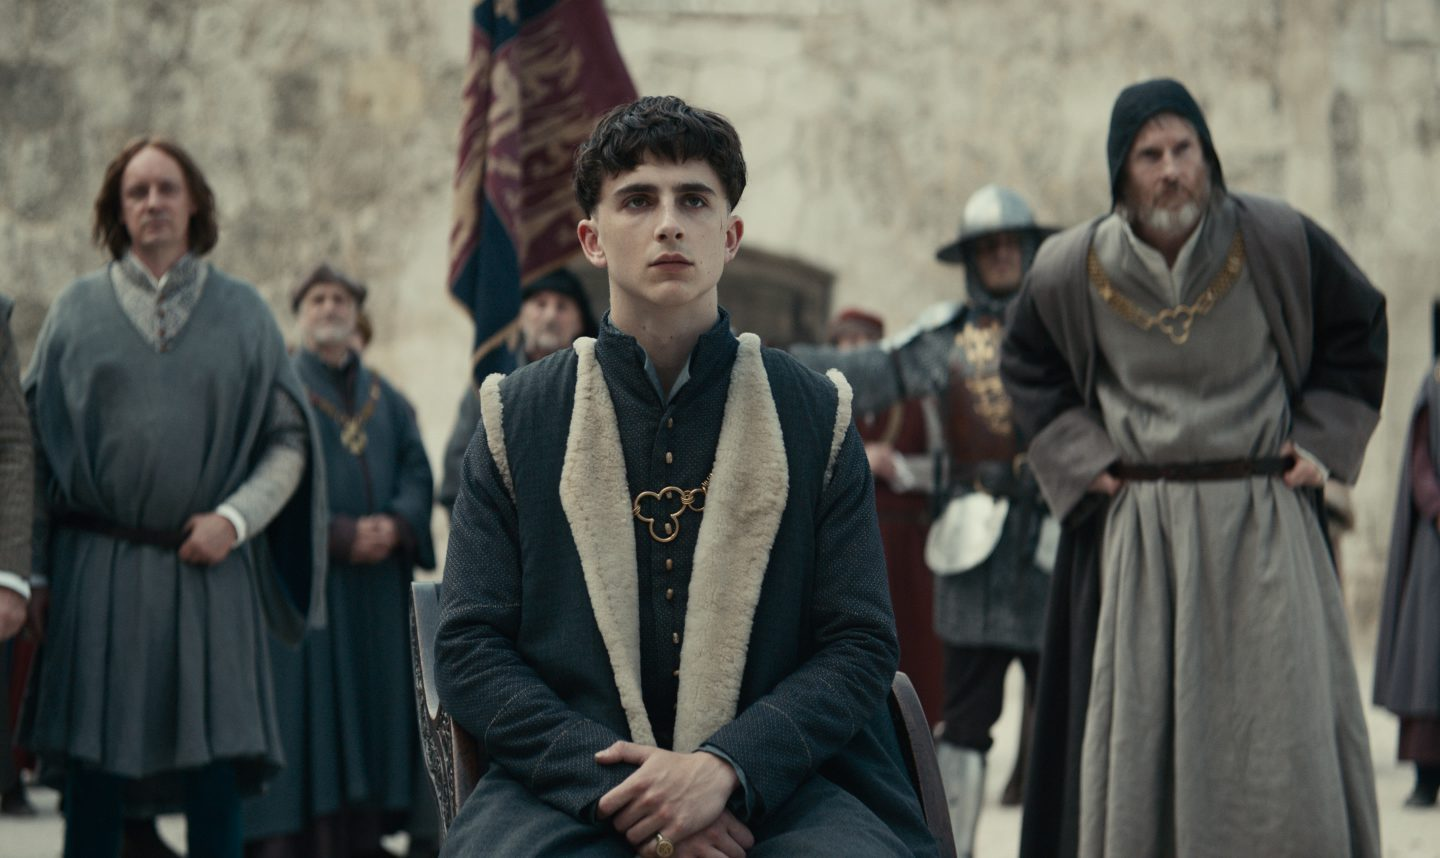 The King, recensione